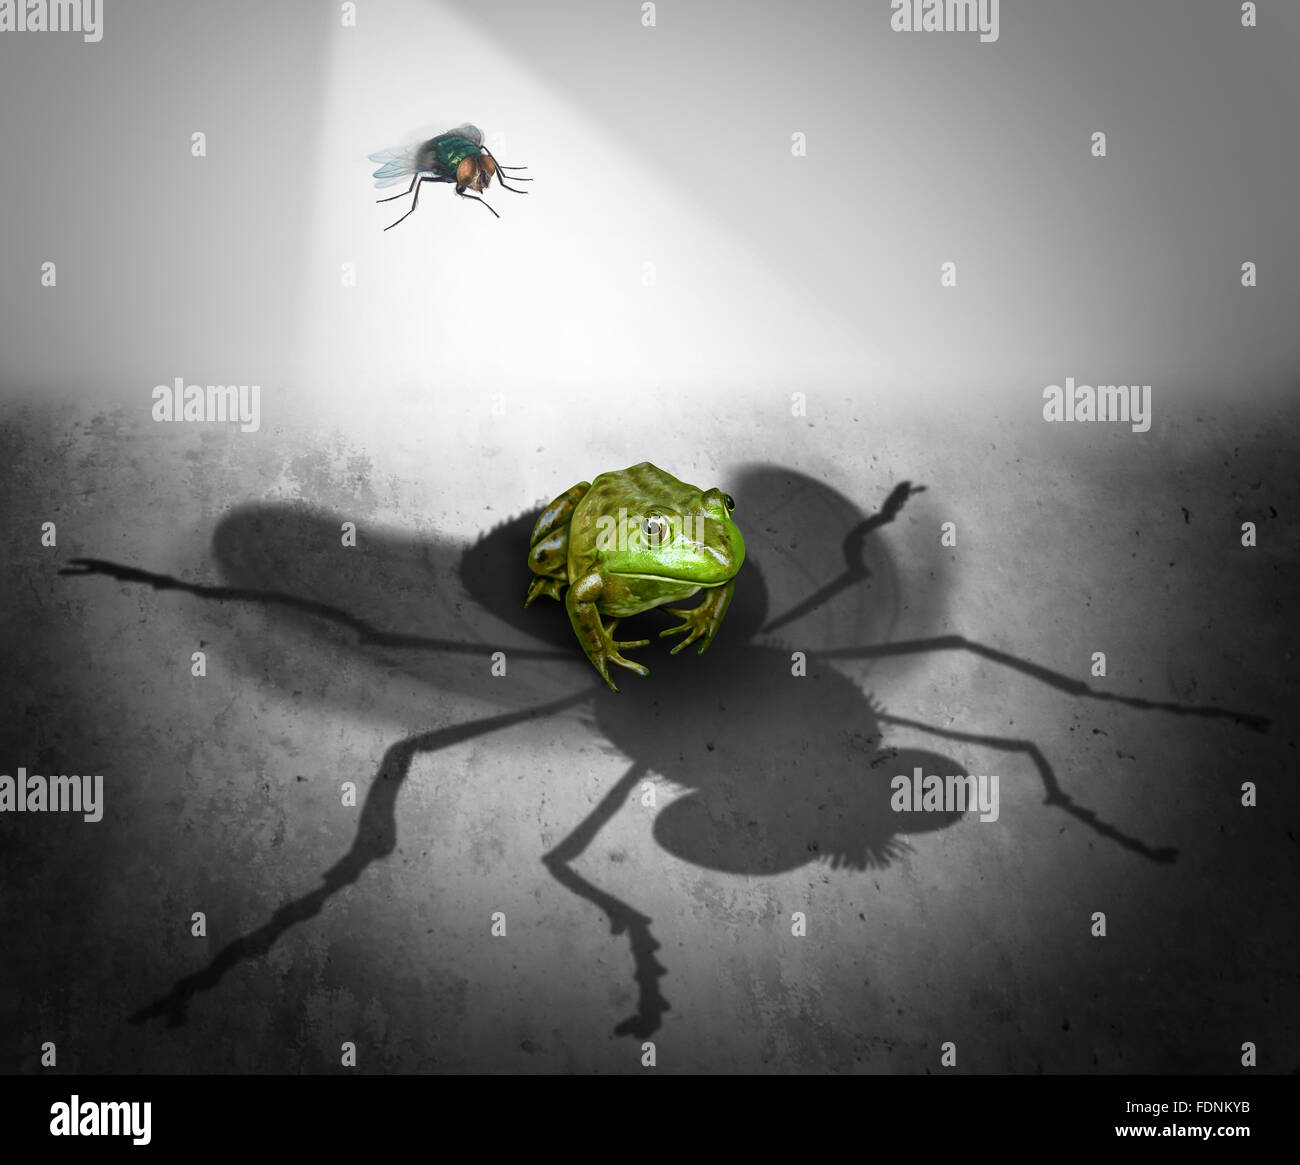 Perception and reality as the giant cast shadow of a small bug falling on a fearful frog as a psychological metaphor - Stock Image